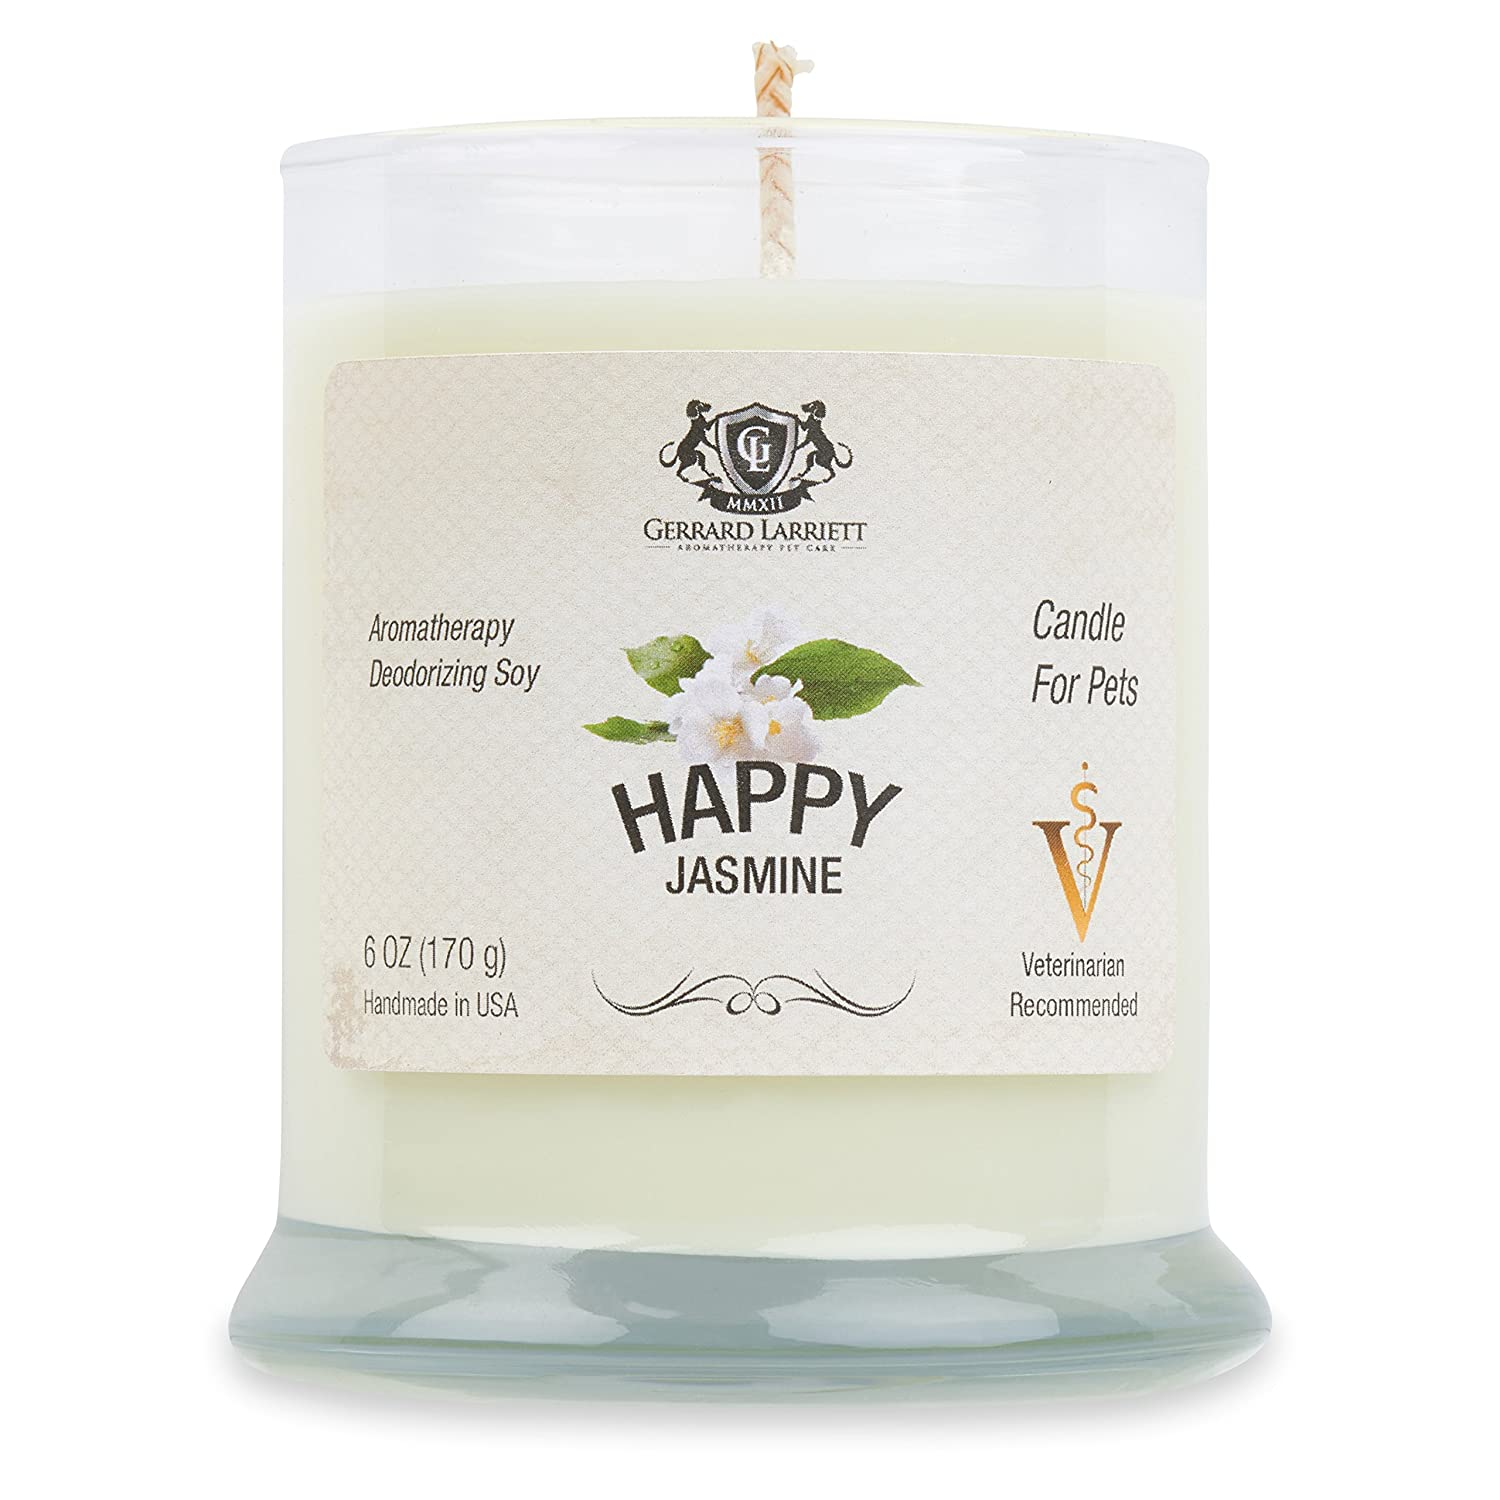 Aromatherapy Deodorizing Soy Candle For Pets (Jasmine) 20999